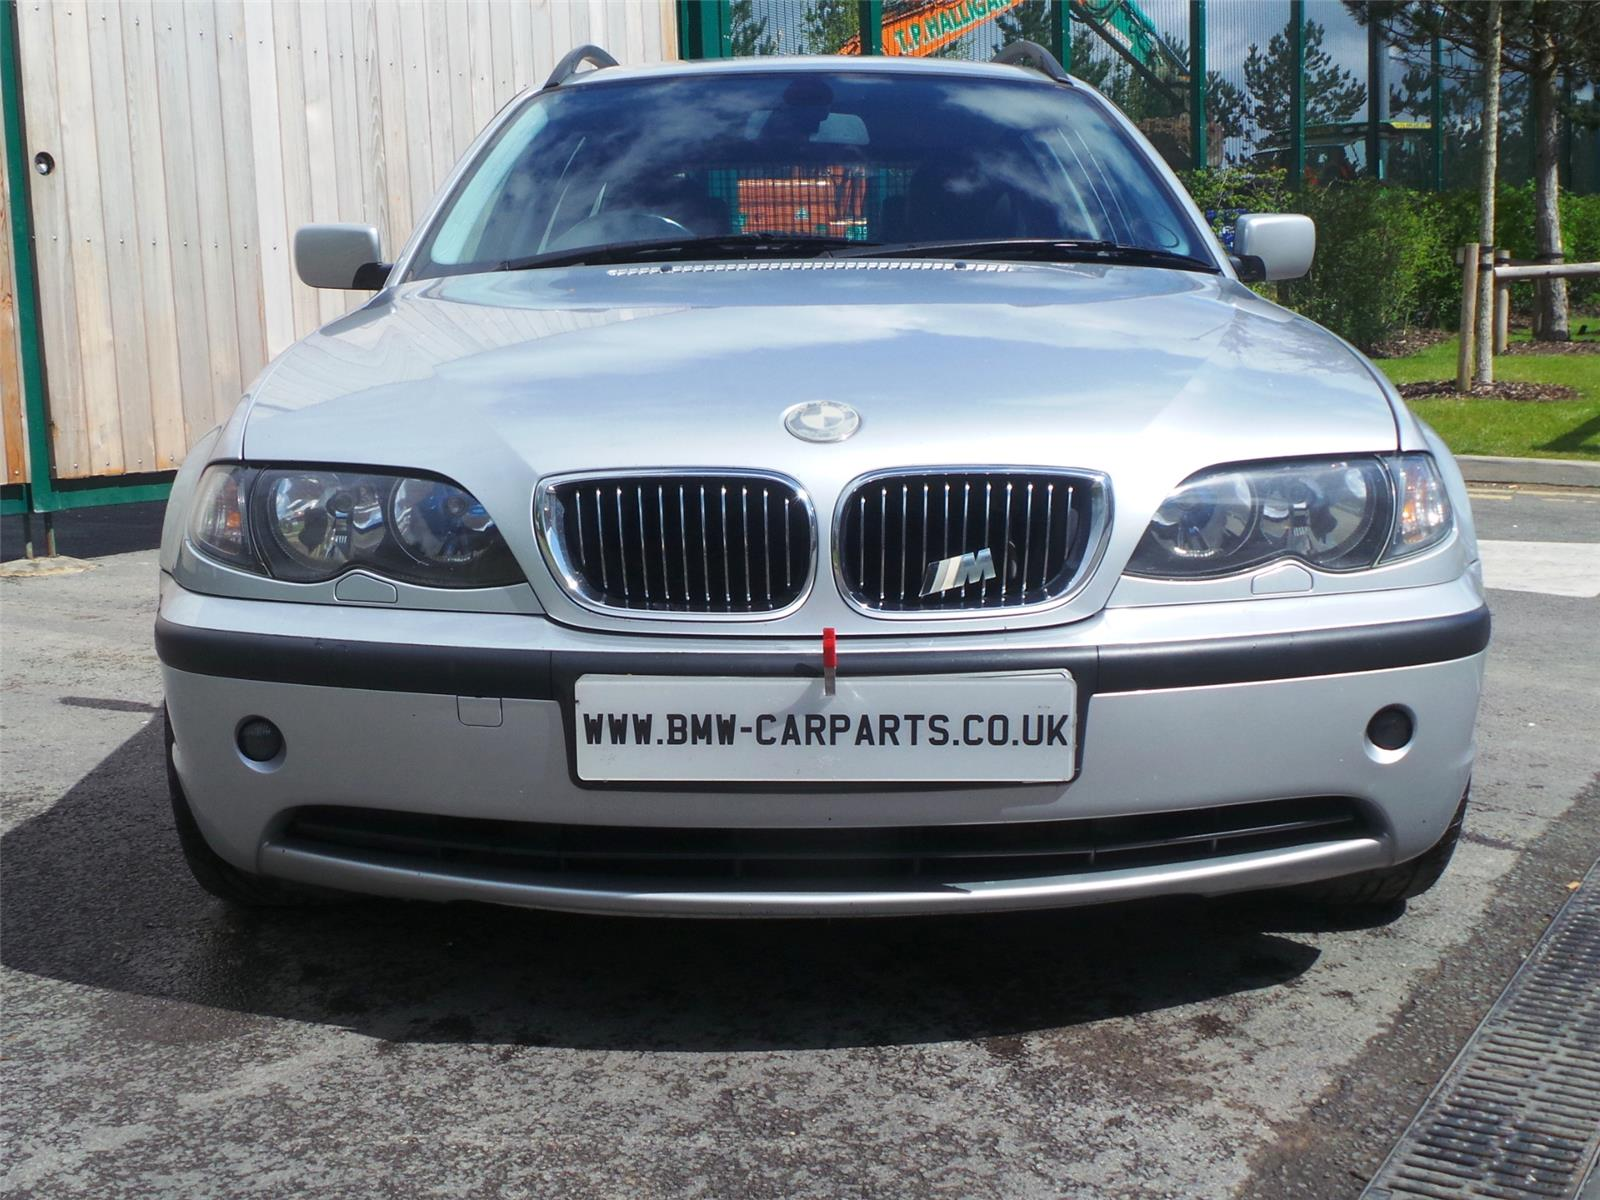 2002 bmw 3 series 330d touring estate diesel automatic breaking for used and spare parts. Black Bedroom Furniture Sets. Home Design Ideas